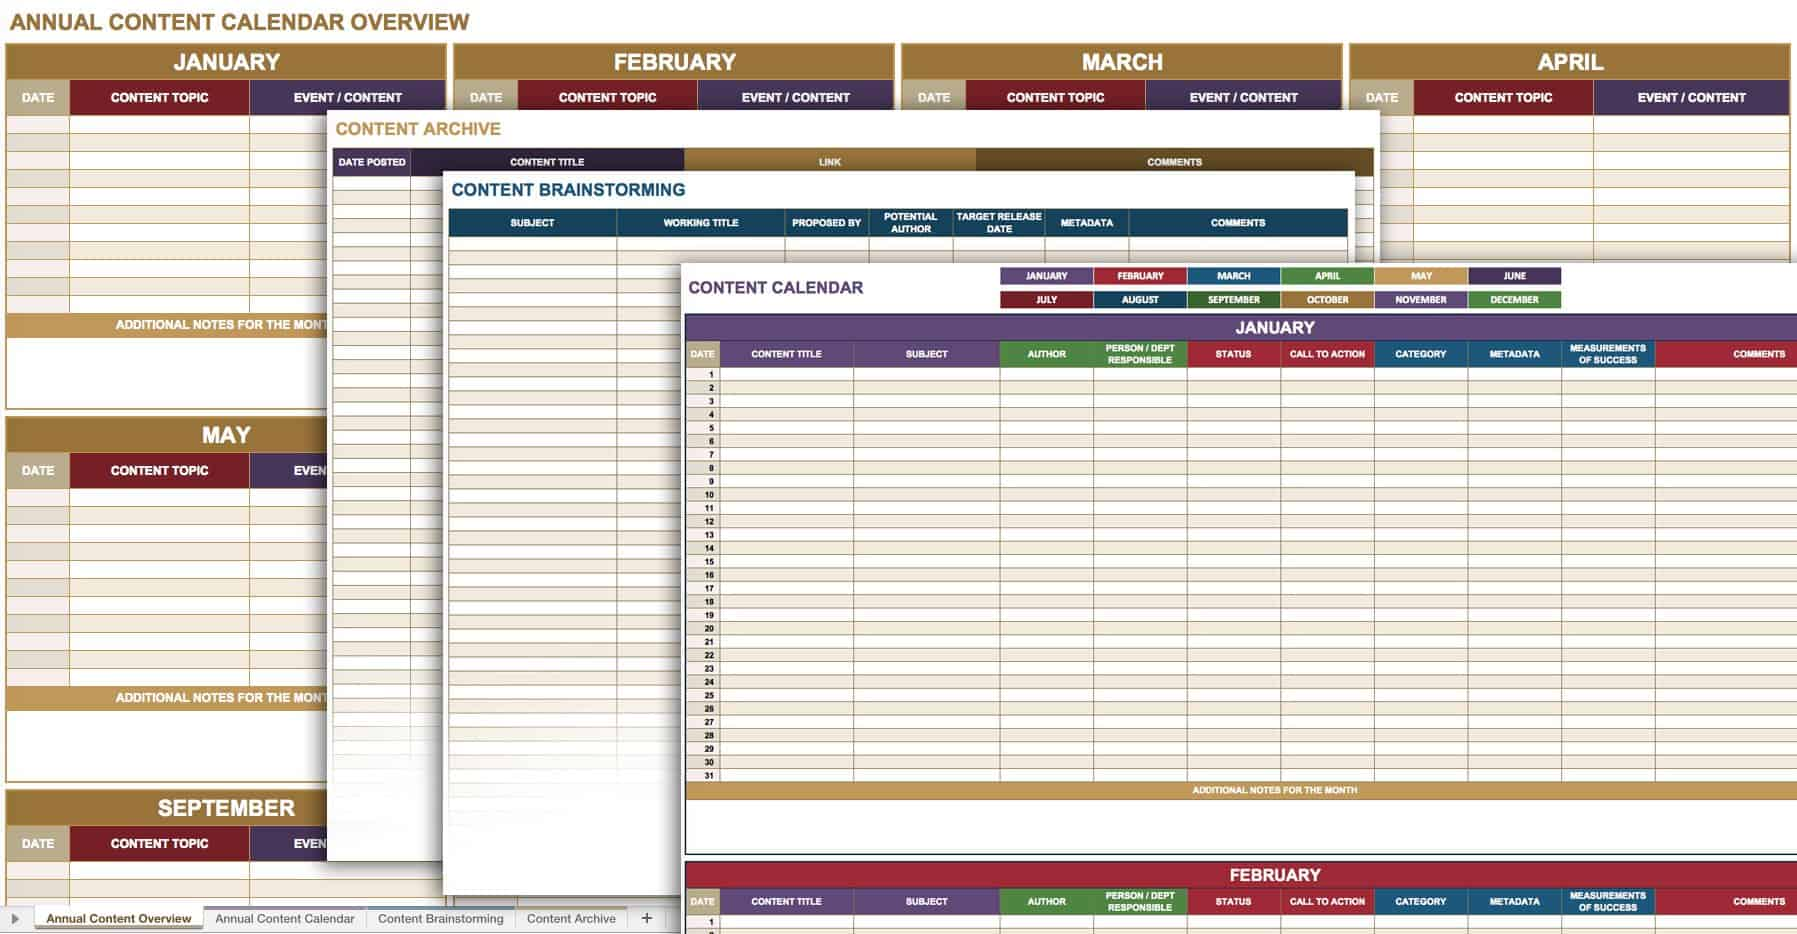 Free Social Media Templates Smartsheet - Content marketing schedule template